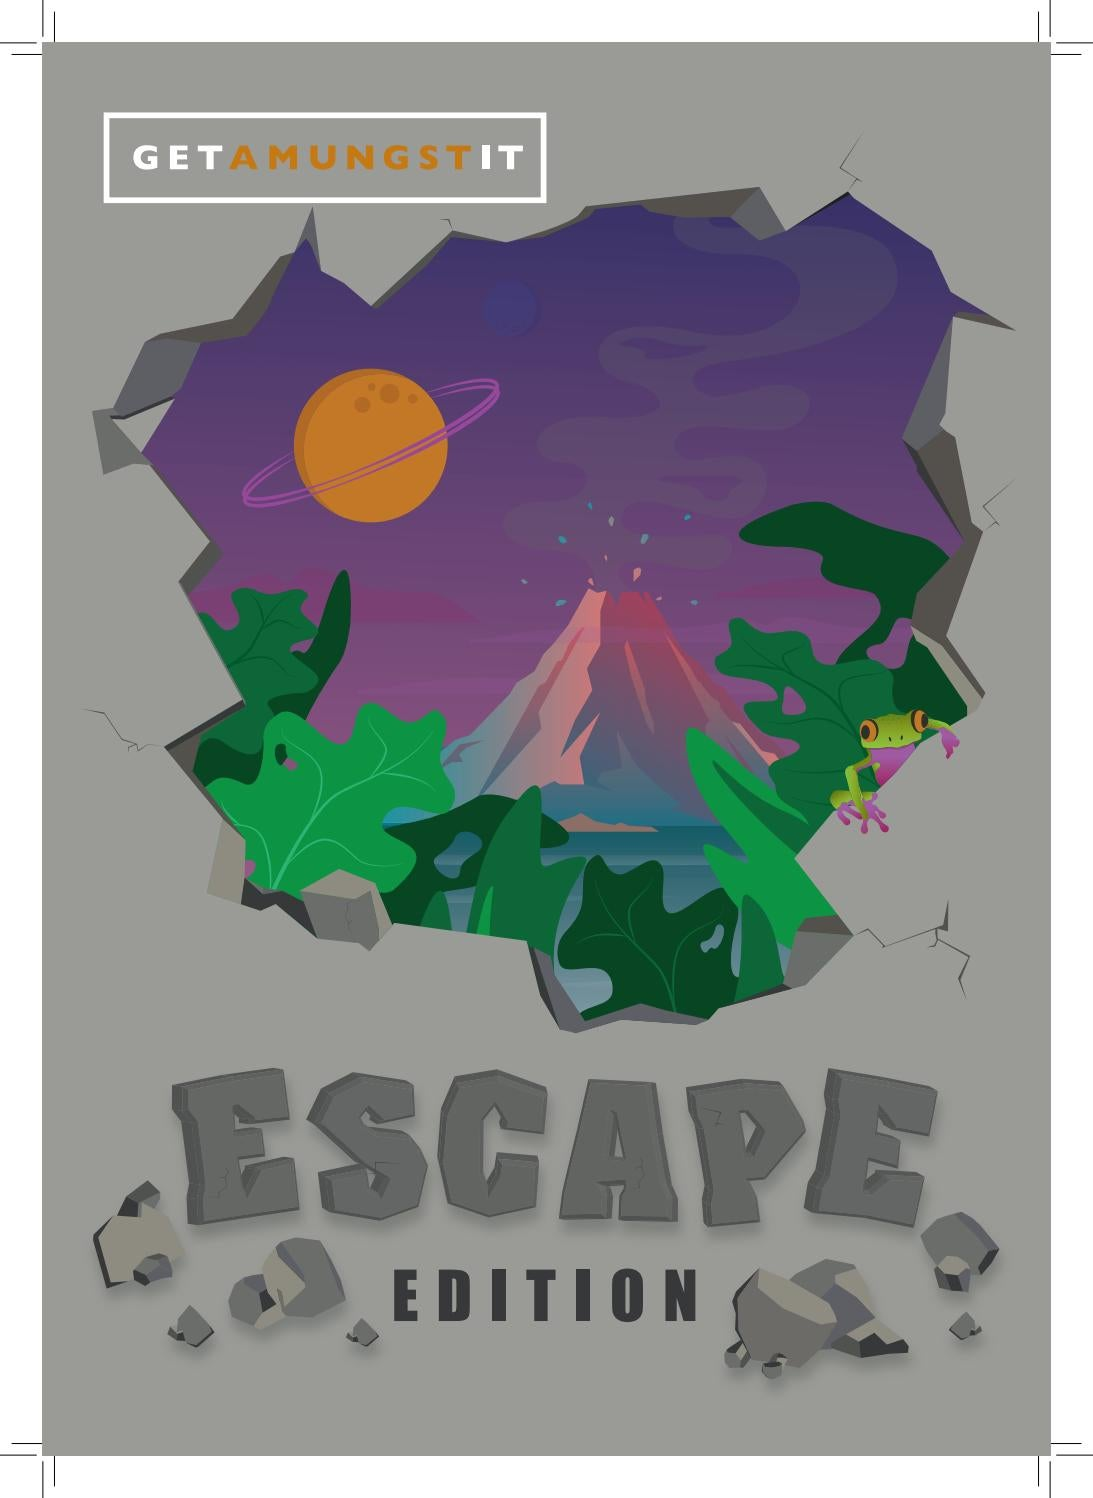 The Escape Edition by Student Guild issuu